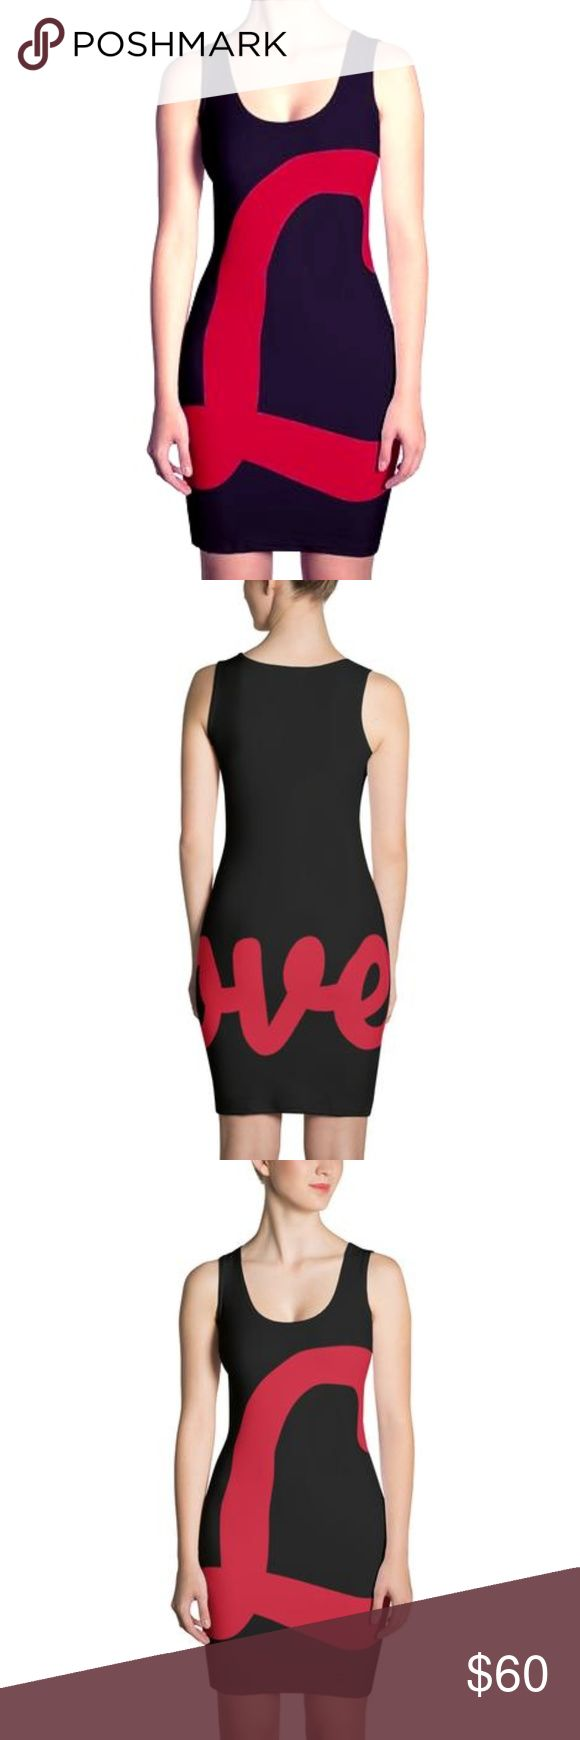 Wrap Yourself In Love Sublimation Cut & Sew Dress Make a statement and pass on the love to everyone.  • Imported fabric: 82% polyester / 18% spandex • Material has a four-way stretch, which means fabric stretches and recovers on the cross and lengthwise grains. • Made with smooth, comfortable microfiber yarn • Precision-cut and hand-sewn   Model's height: 5'10''/177 cm  Size guide                        XSSMLXL Bust (inches)3234374244 Waist (inches)2528303537 Hip…